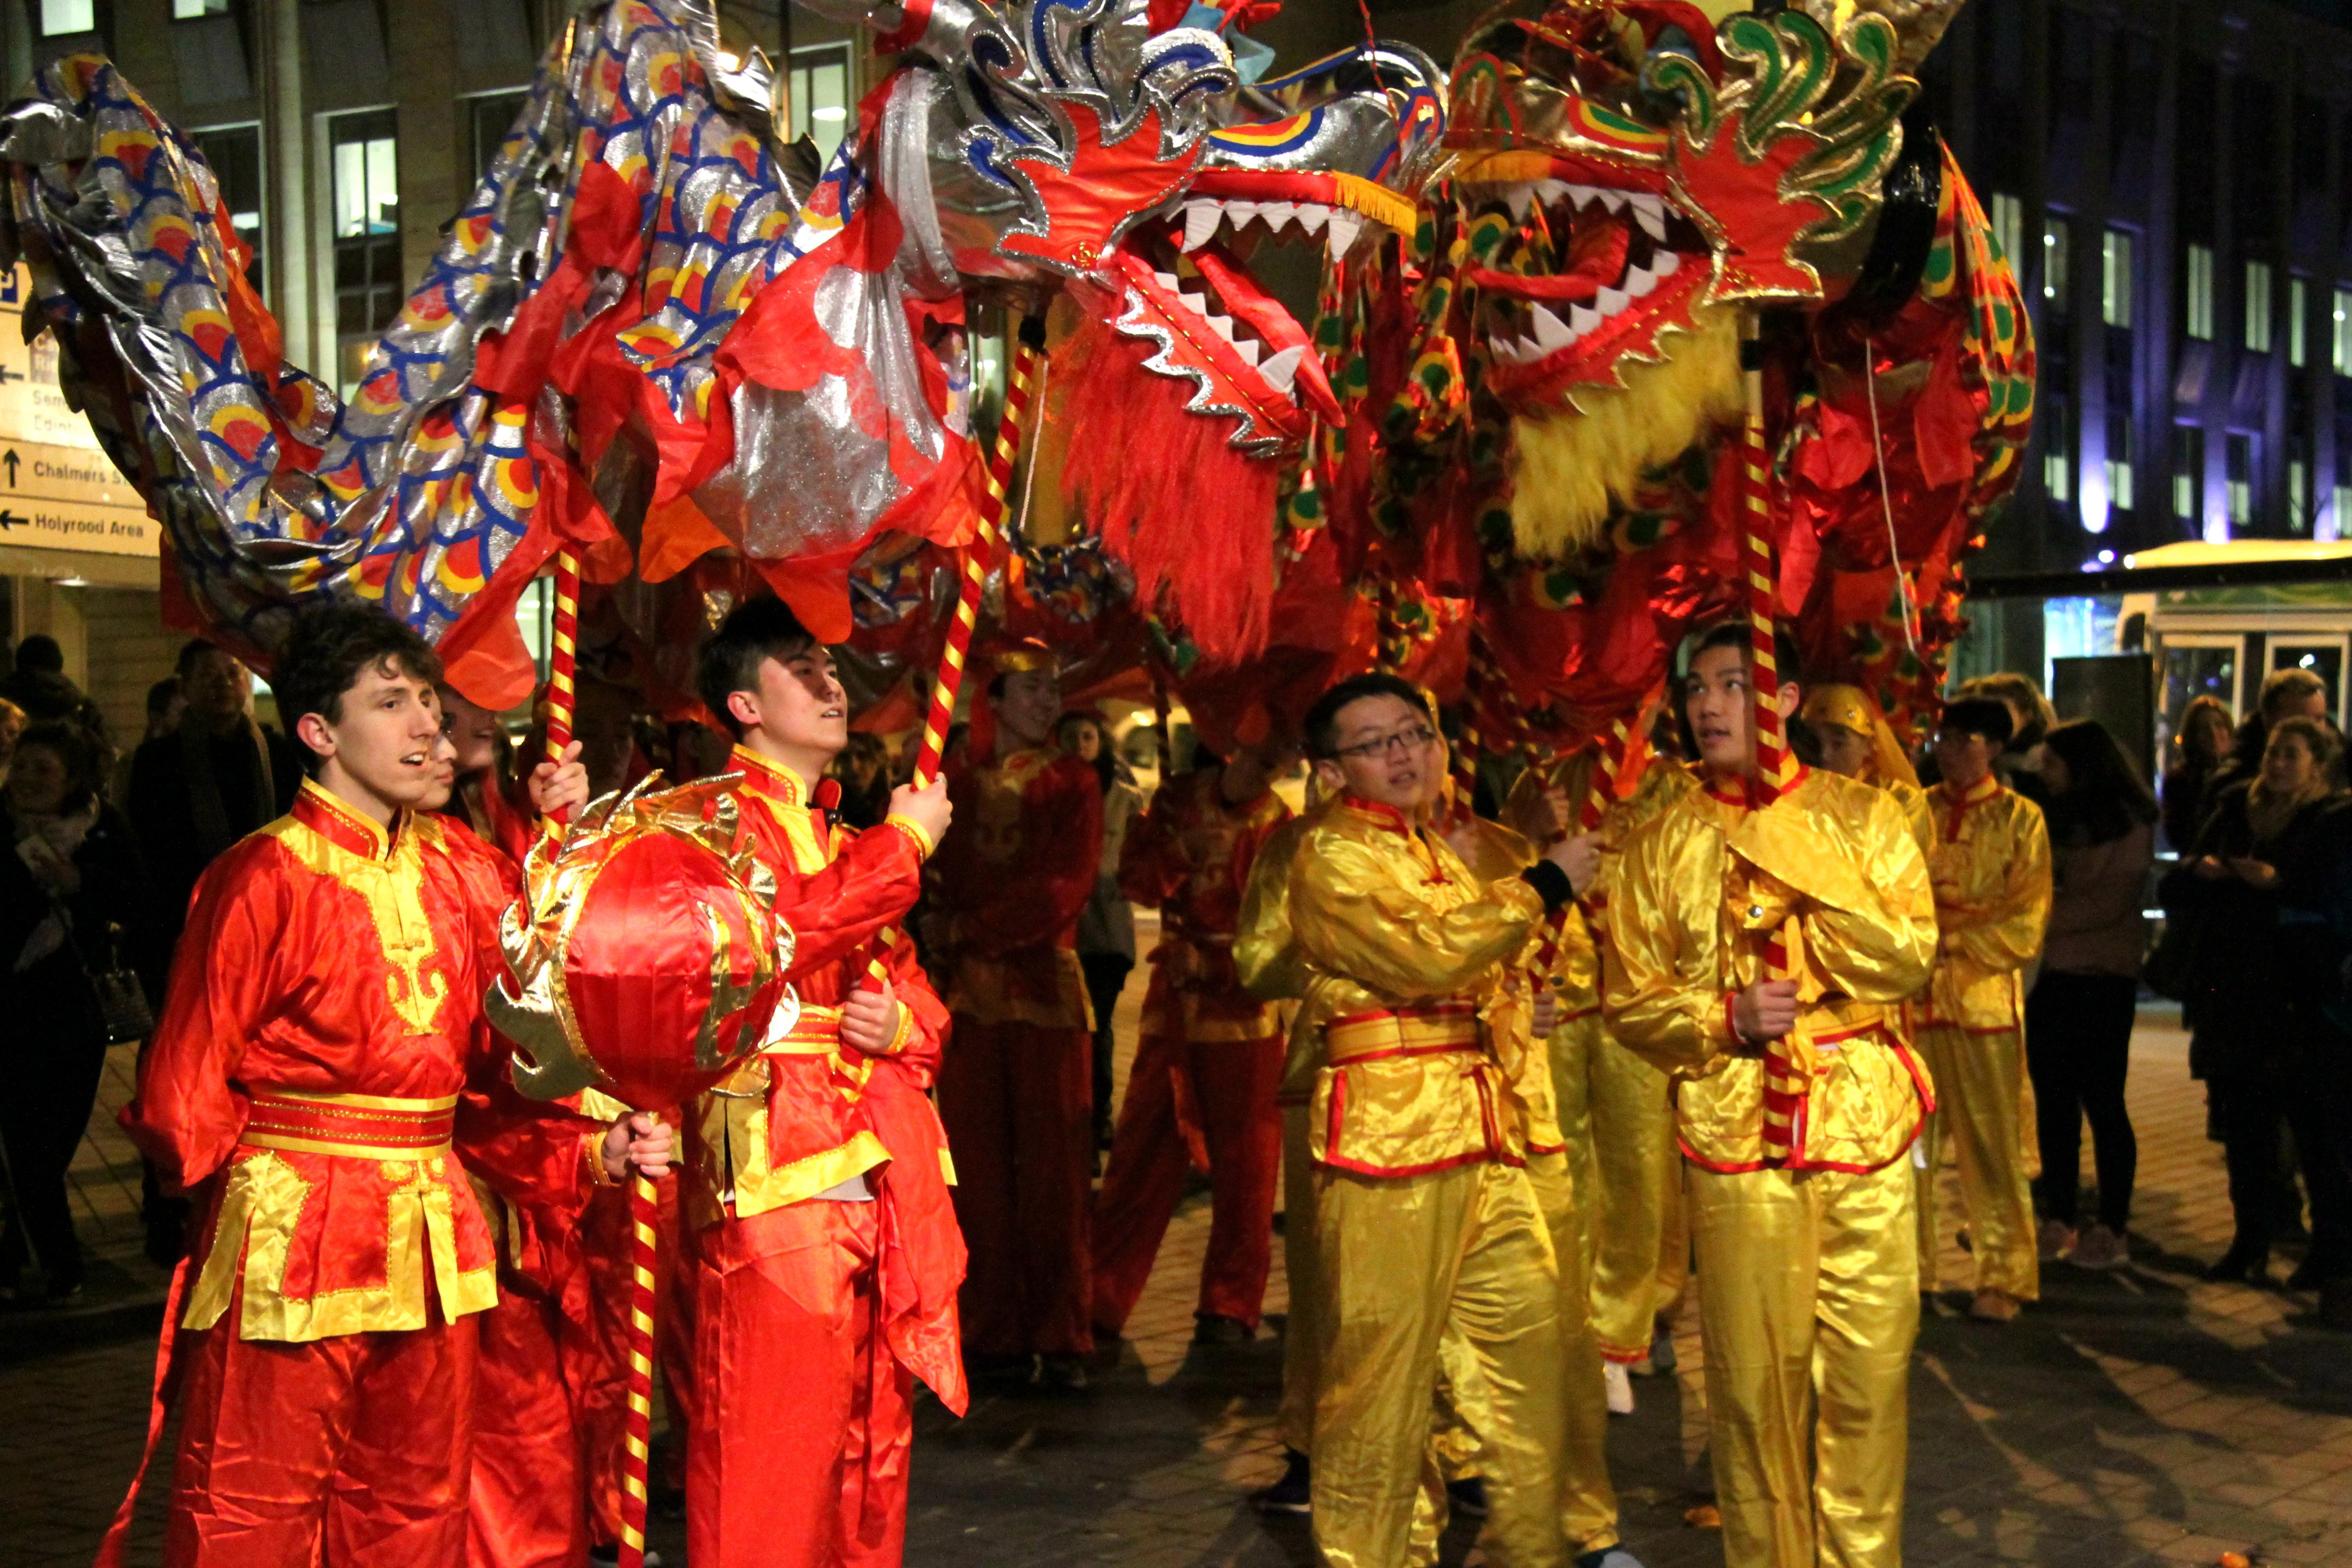 2018 chinese new year reception and concert held in edinburgh malvernweather Image collections